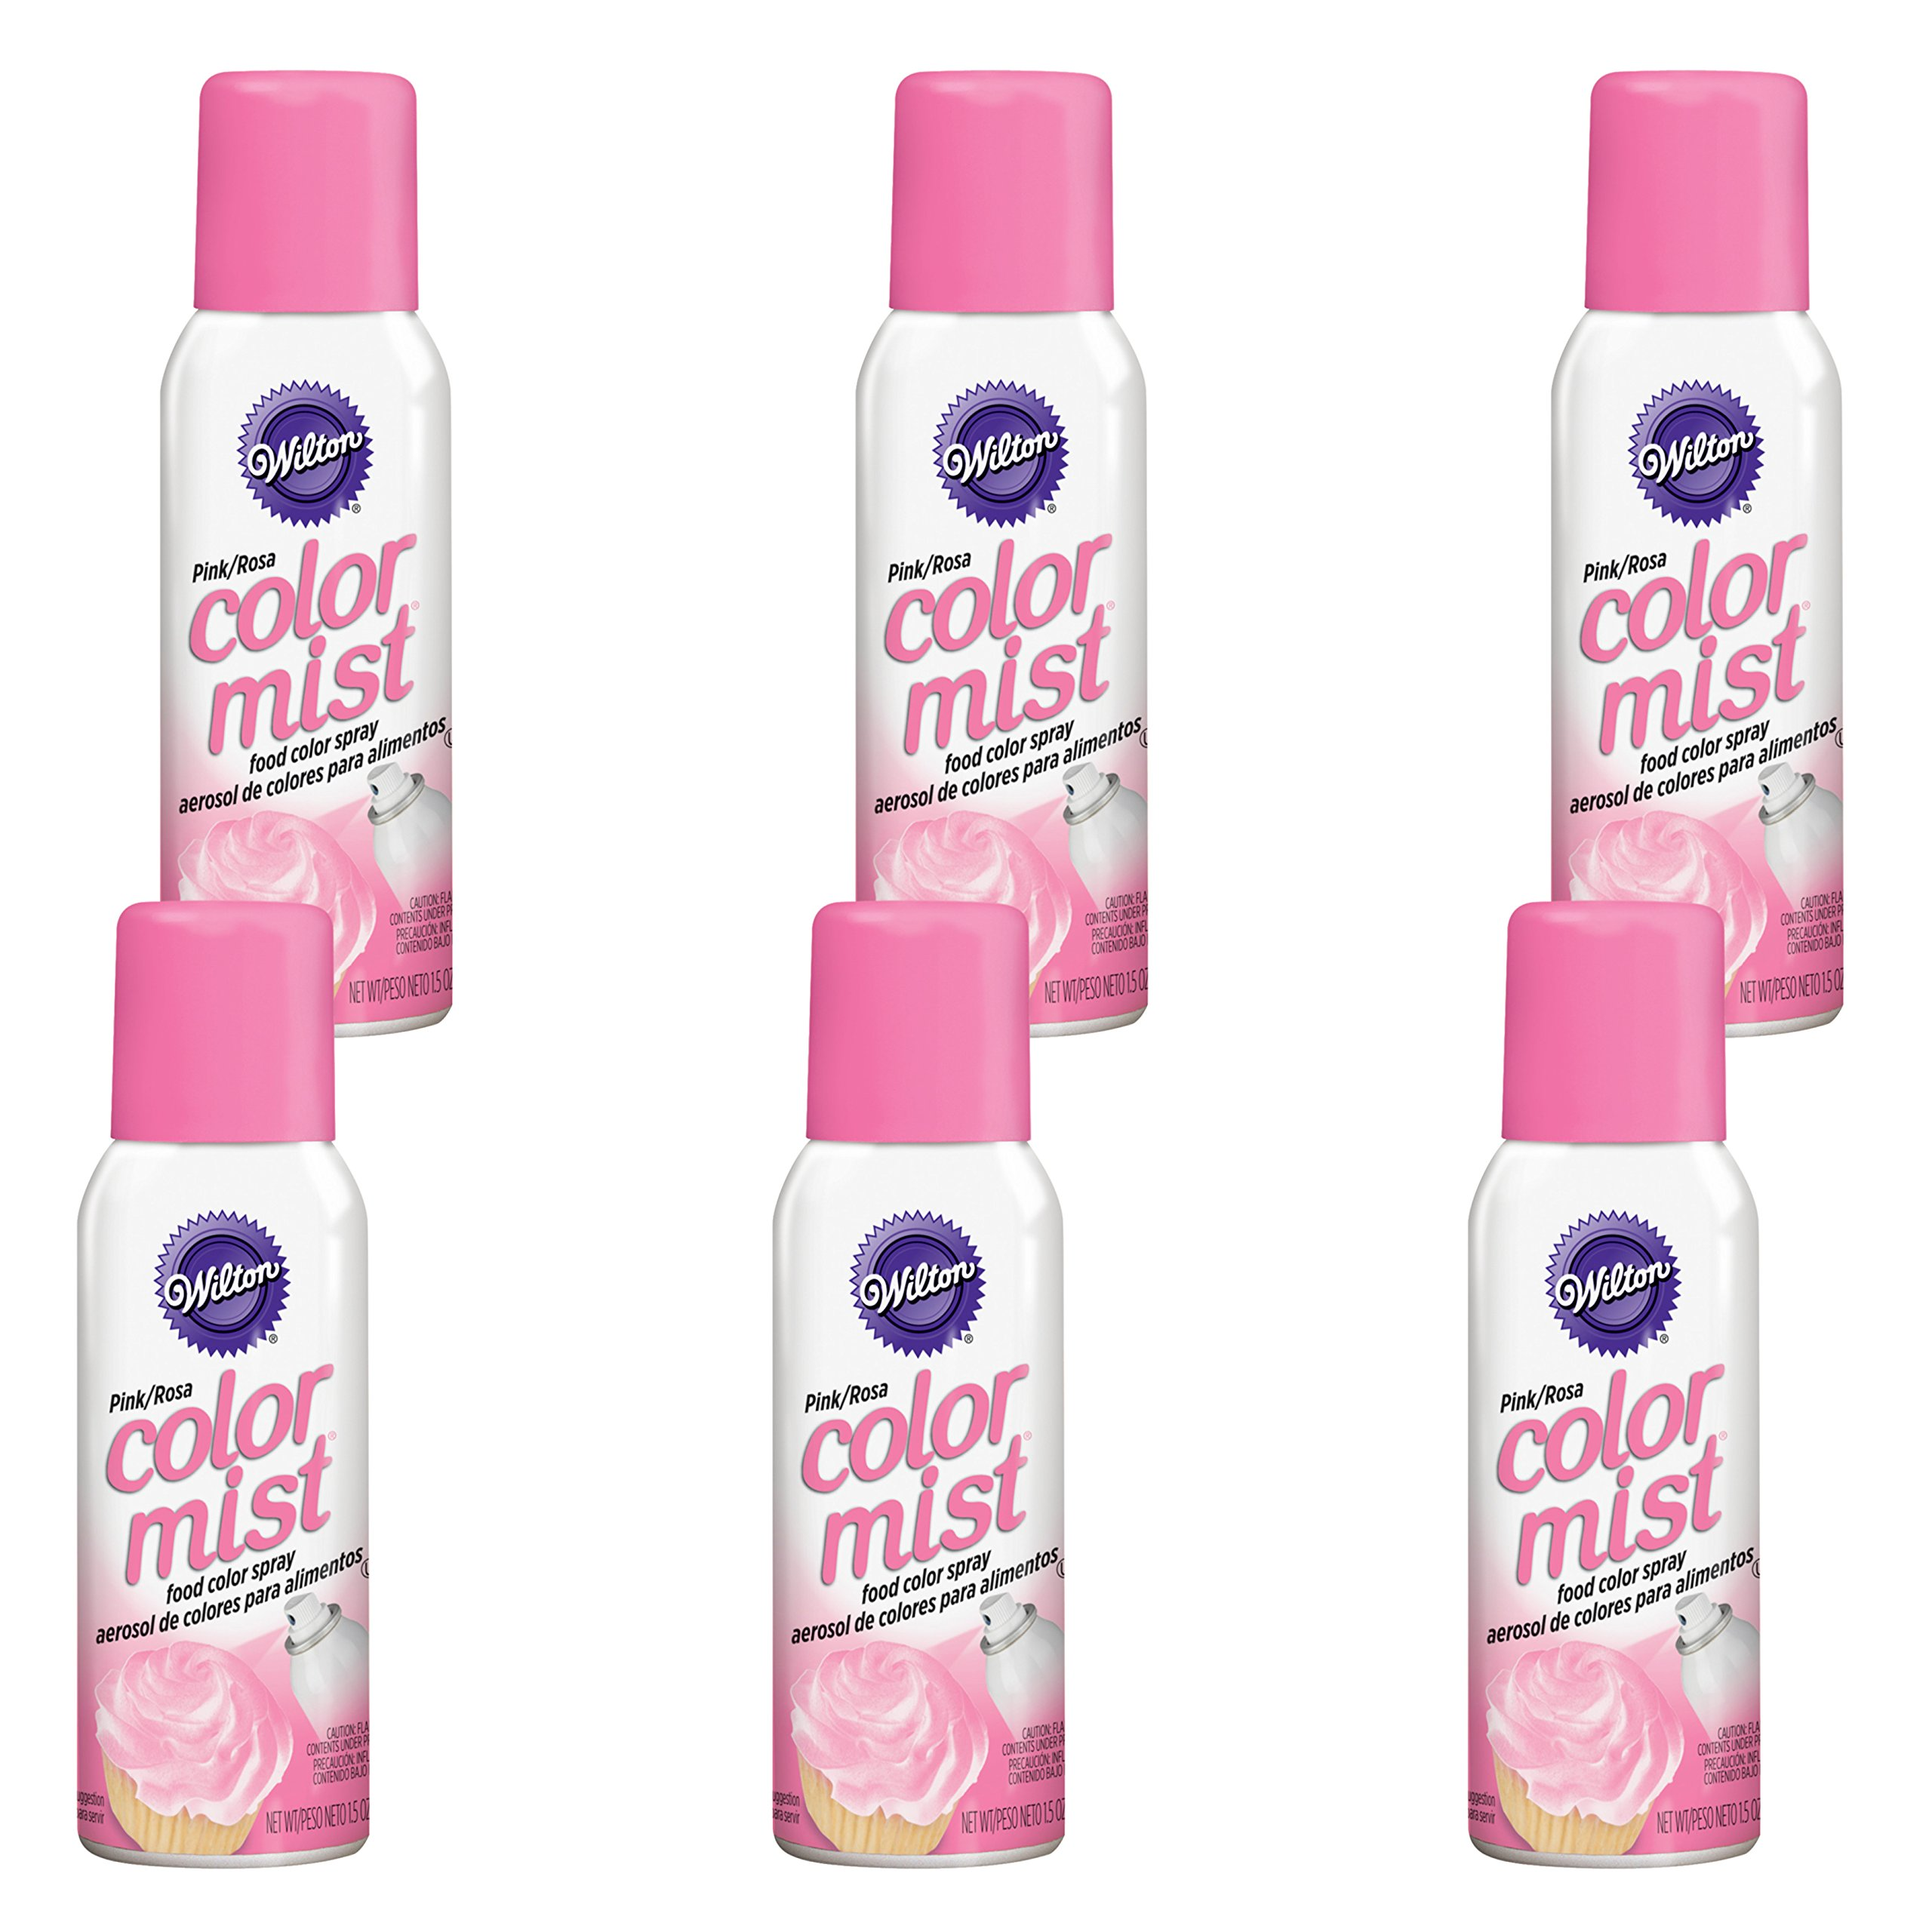 Wilton Pink Color Mist Food Color Spray, Multipack of 6 by Wilton (Image #1)